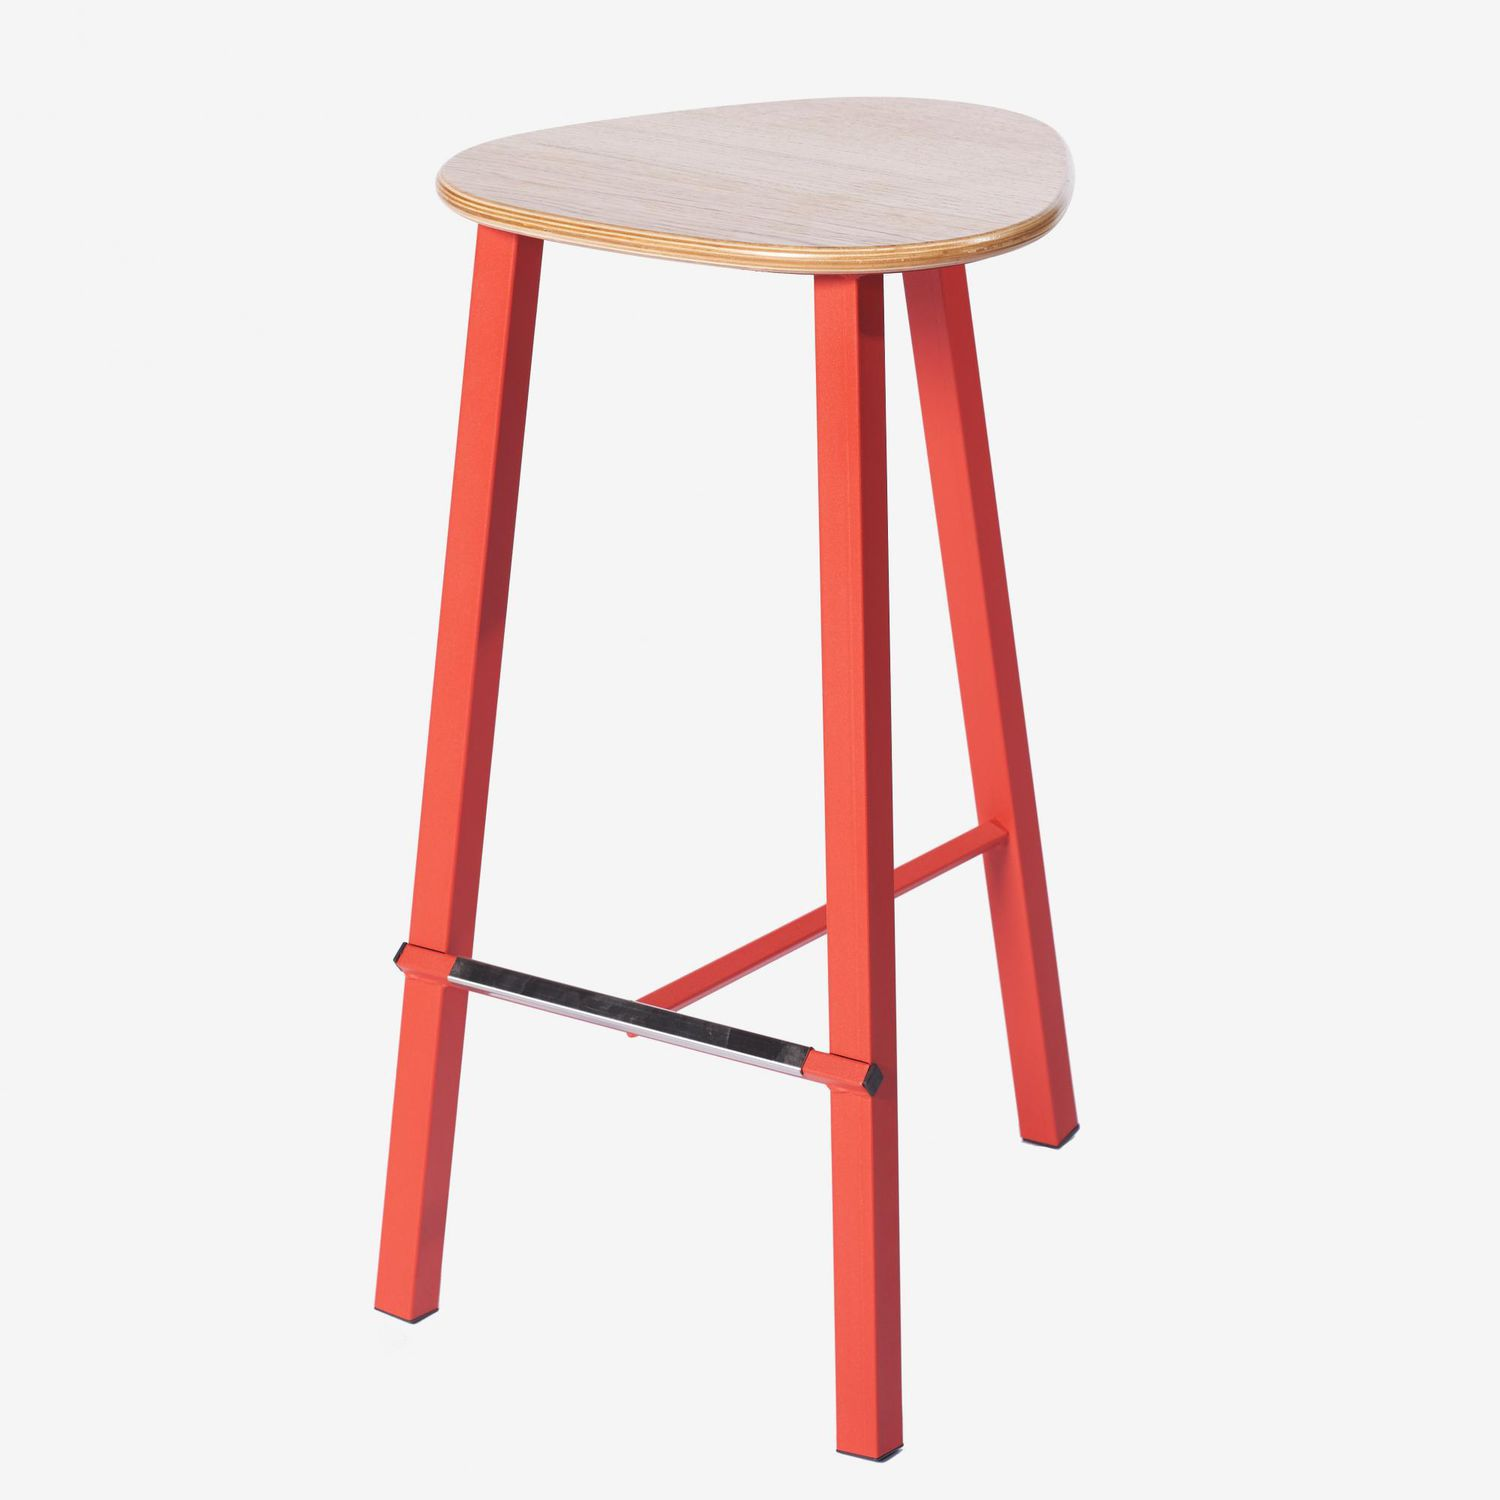 Stupendous Contemporary Bar Stool Powder Coated Steel Molded Beatyapartments Chair Design Images Beatyapartmentscom